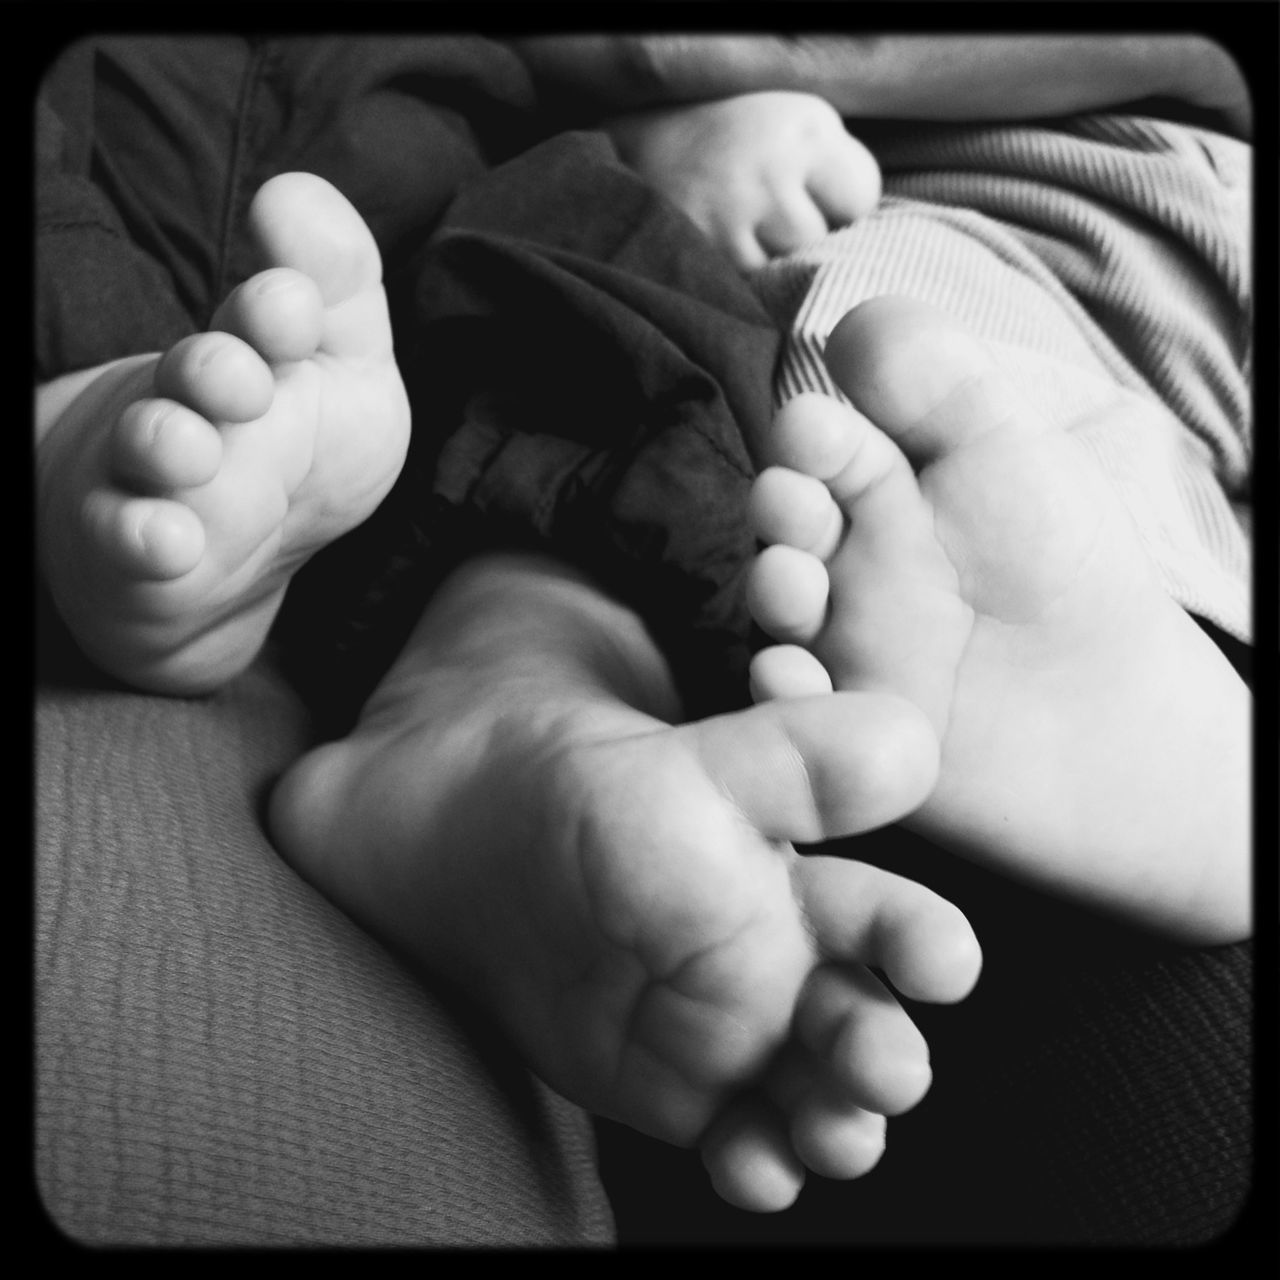 baby, newborn, babyhood, togetherness, fragility, innocence, bonding, love, childhood, beginnings, human hand, care, human body part, new life, indoors, barefoot, sole of foot, family with one child, family, close-up, father, real people, men, black background, day, adult, people